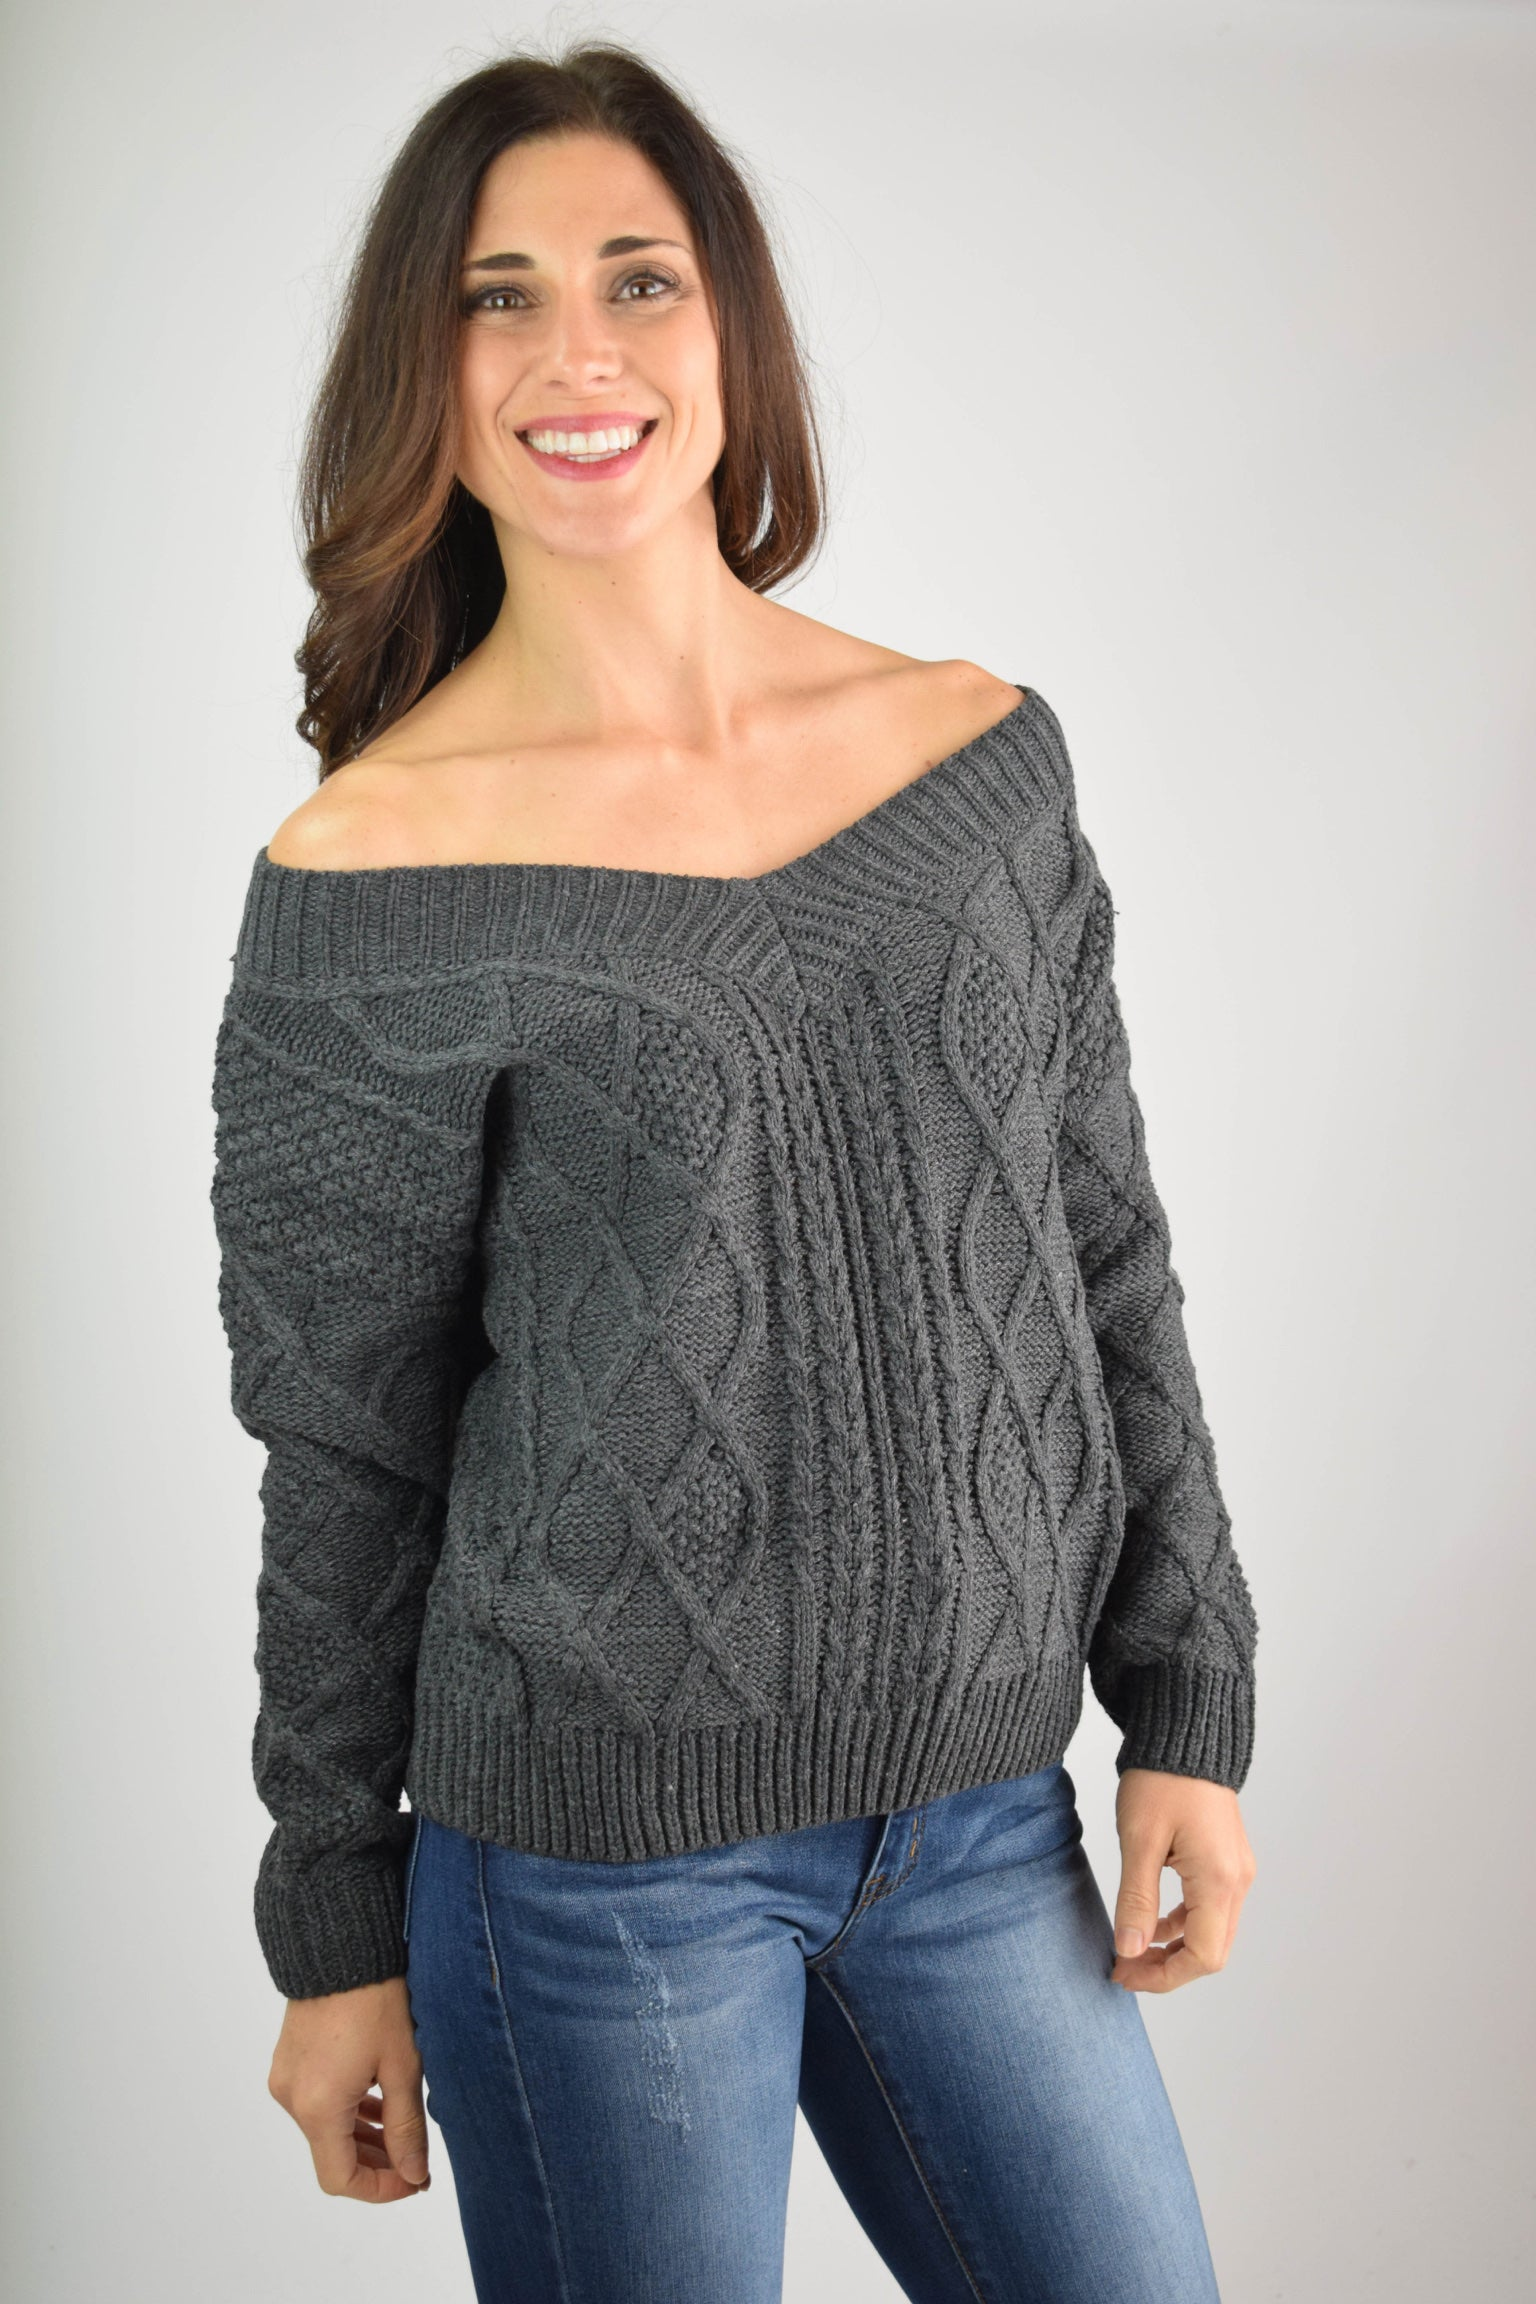 Give Thanks V-Neck Knit Sweater